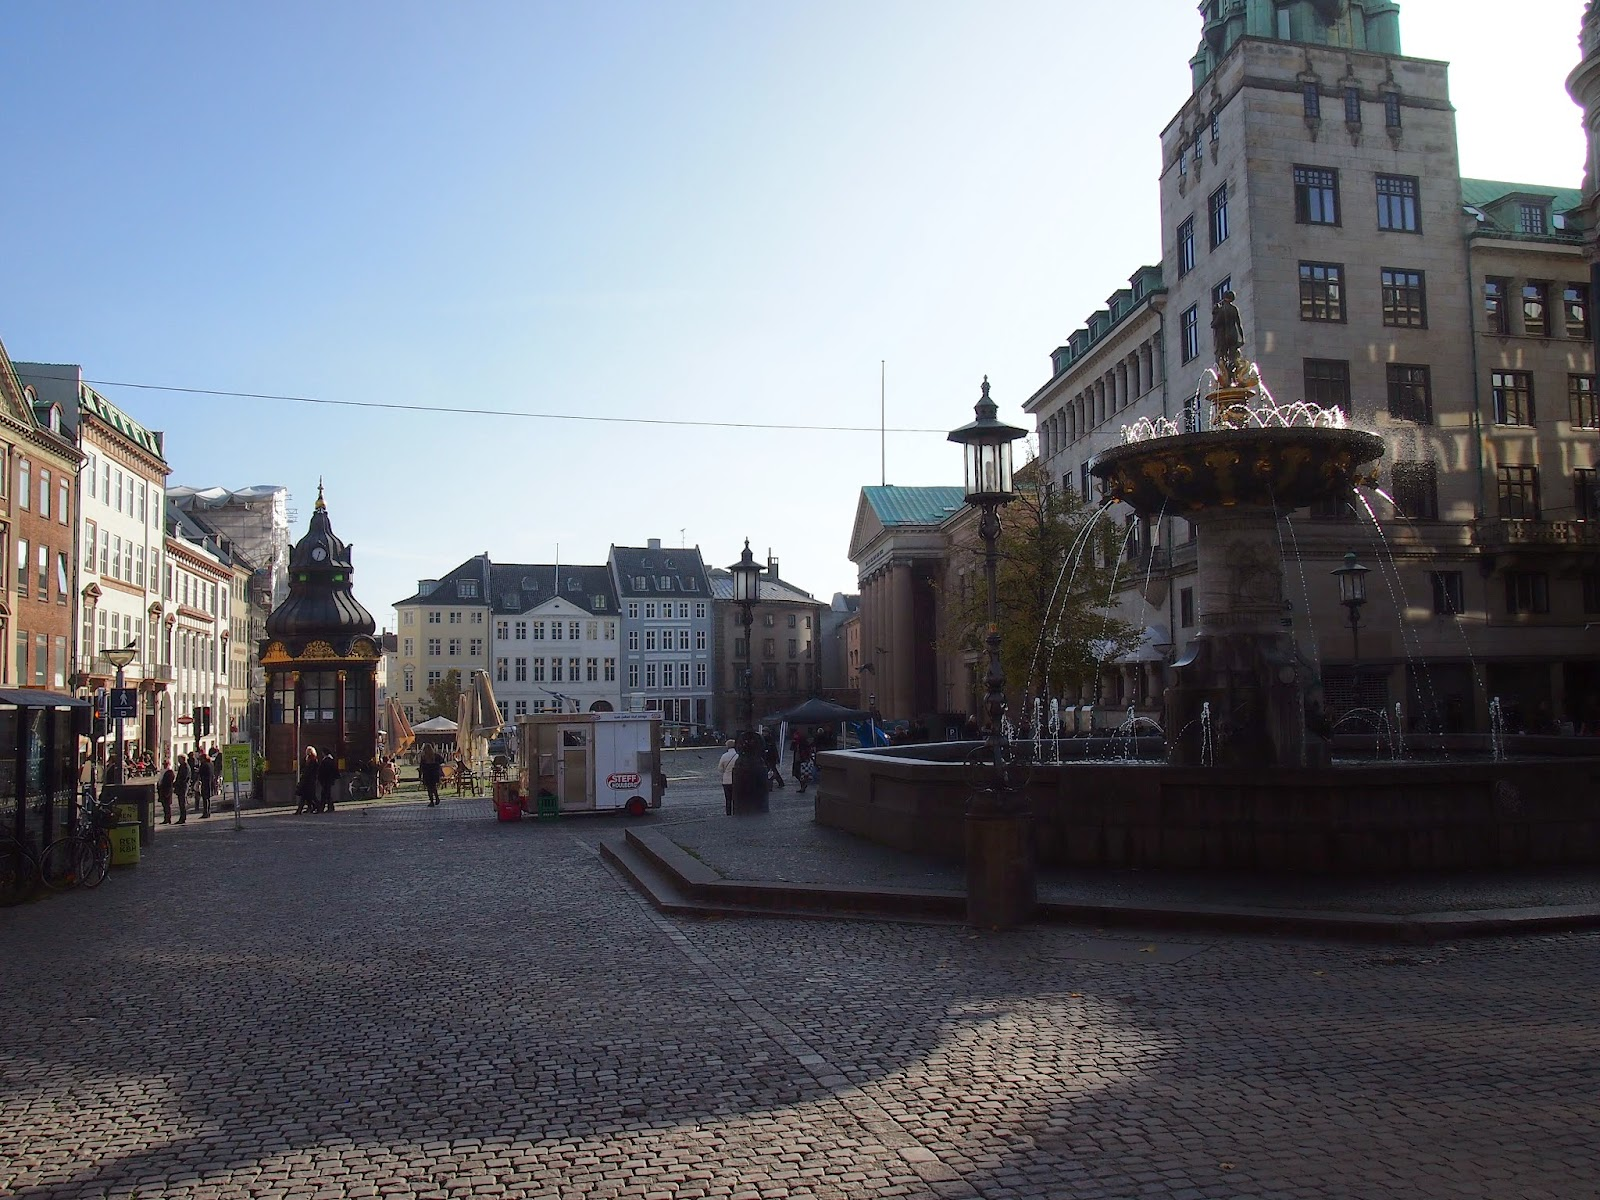 The Slutterigad and Nytorv square